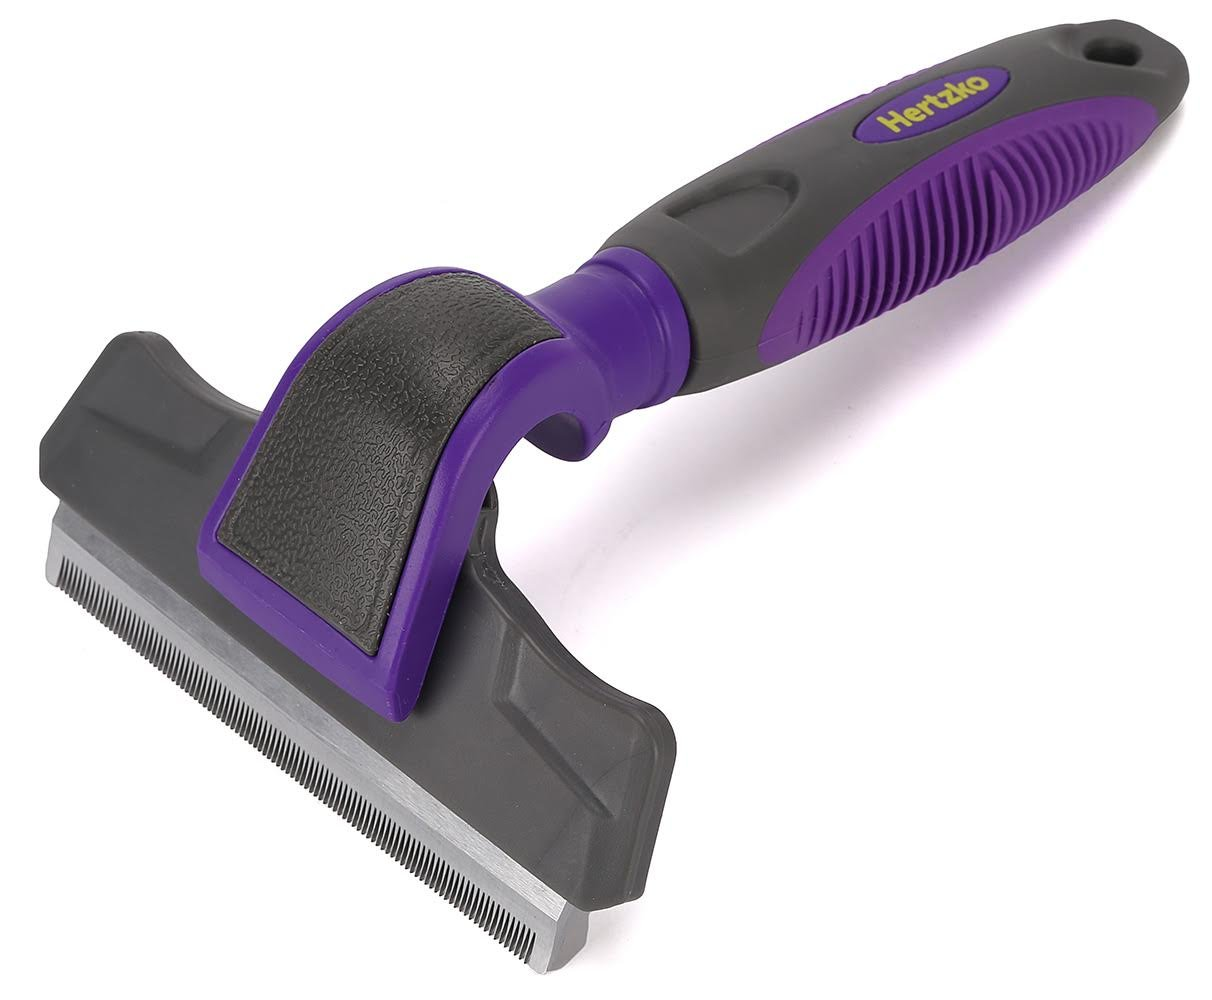 Hertzko Pet Deshedding Tool Gently Removes Shed Hair - for Small, Medium, Large, Dogs and Cats, with Short to Long Hair by Hertzko